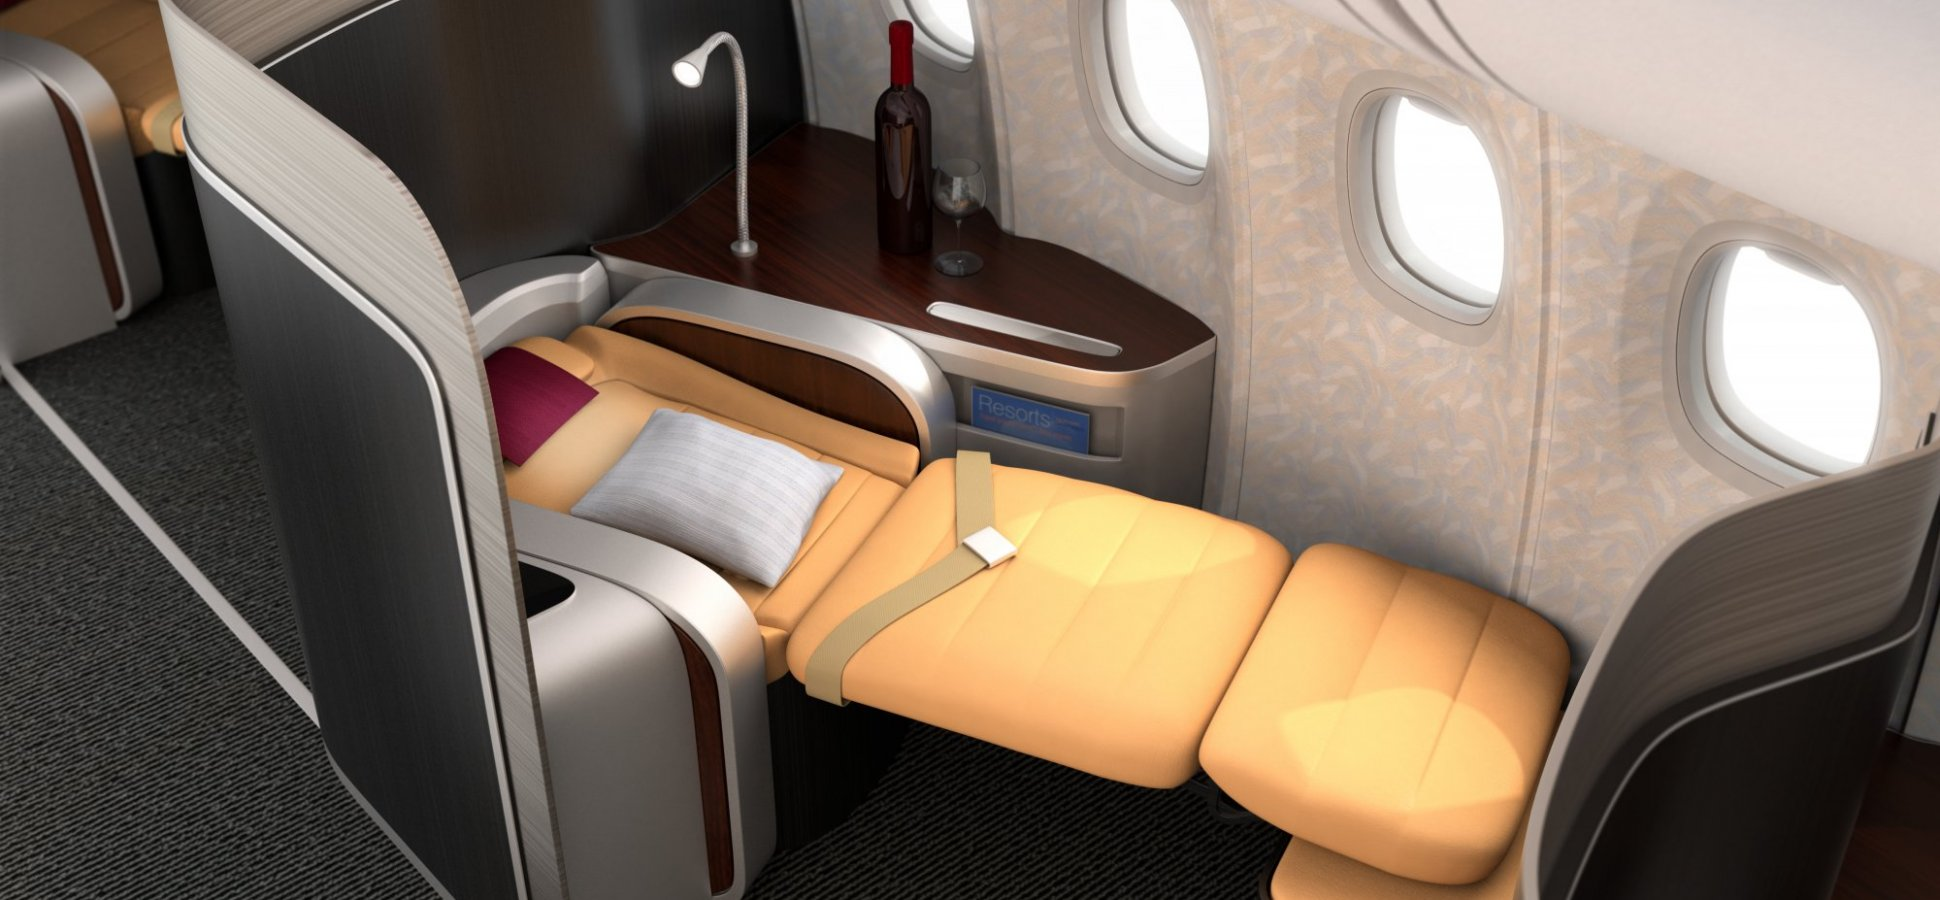 The 2 Words That Will Get You an Upgrade to First Class (According to Someone Who Keeps Doing It)